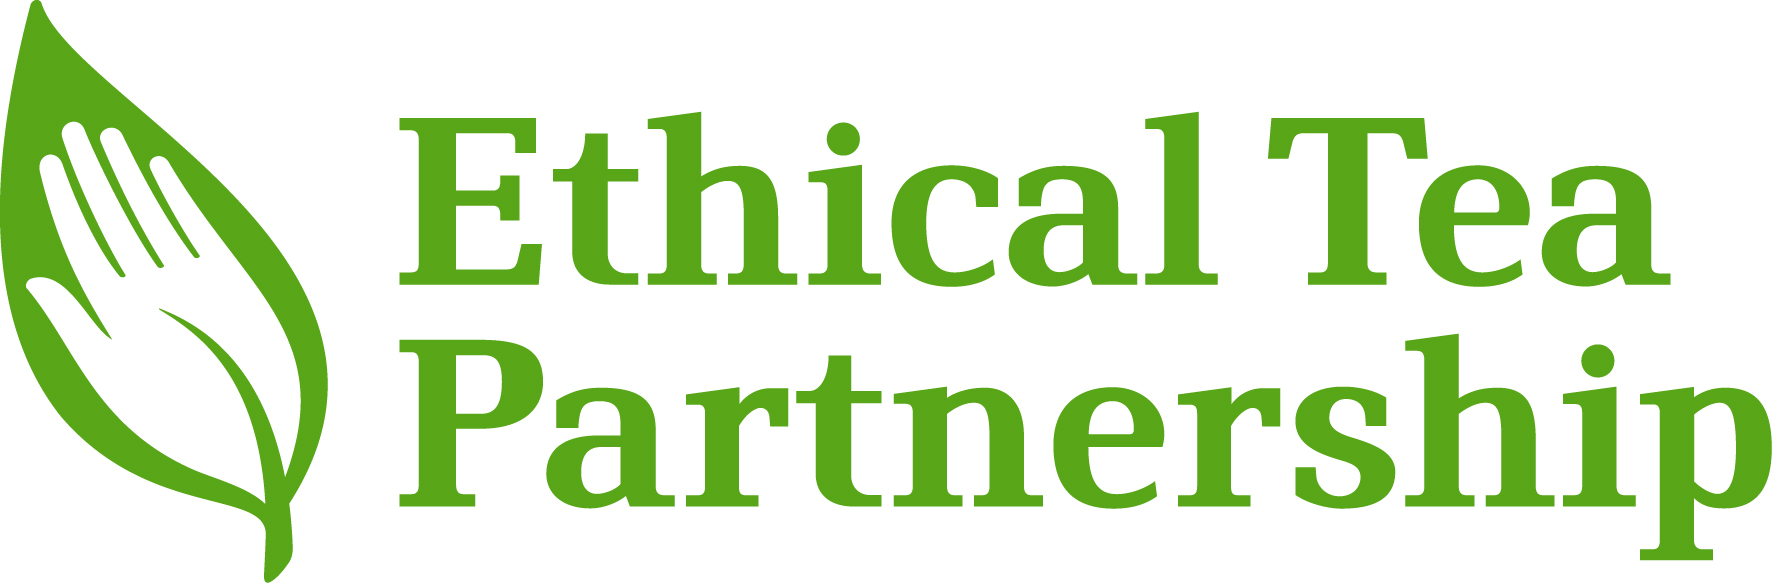 Image result for ethical tea partnership logo